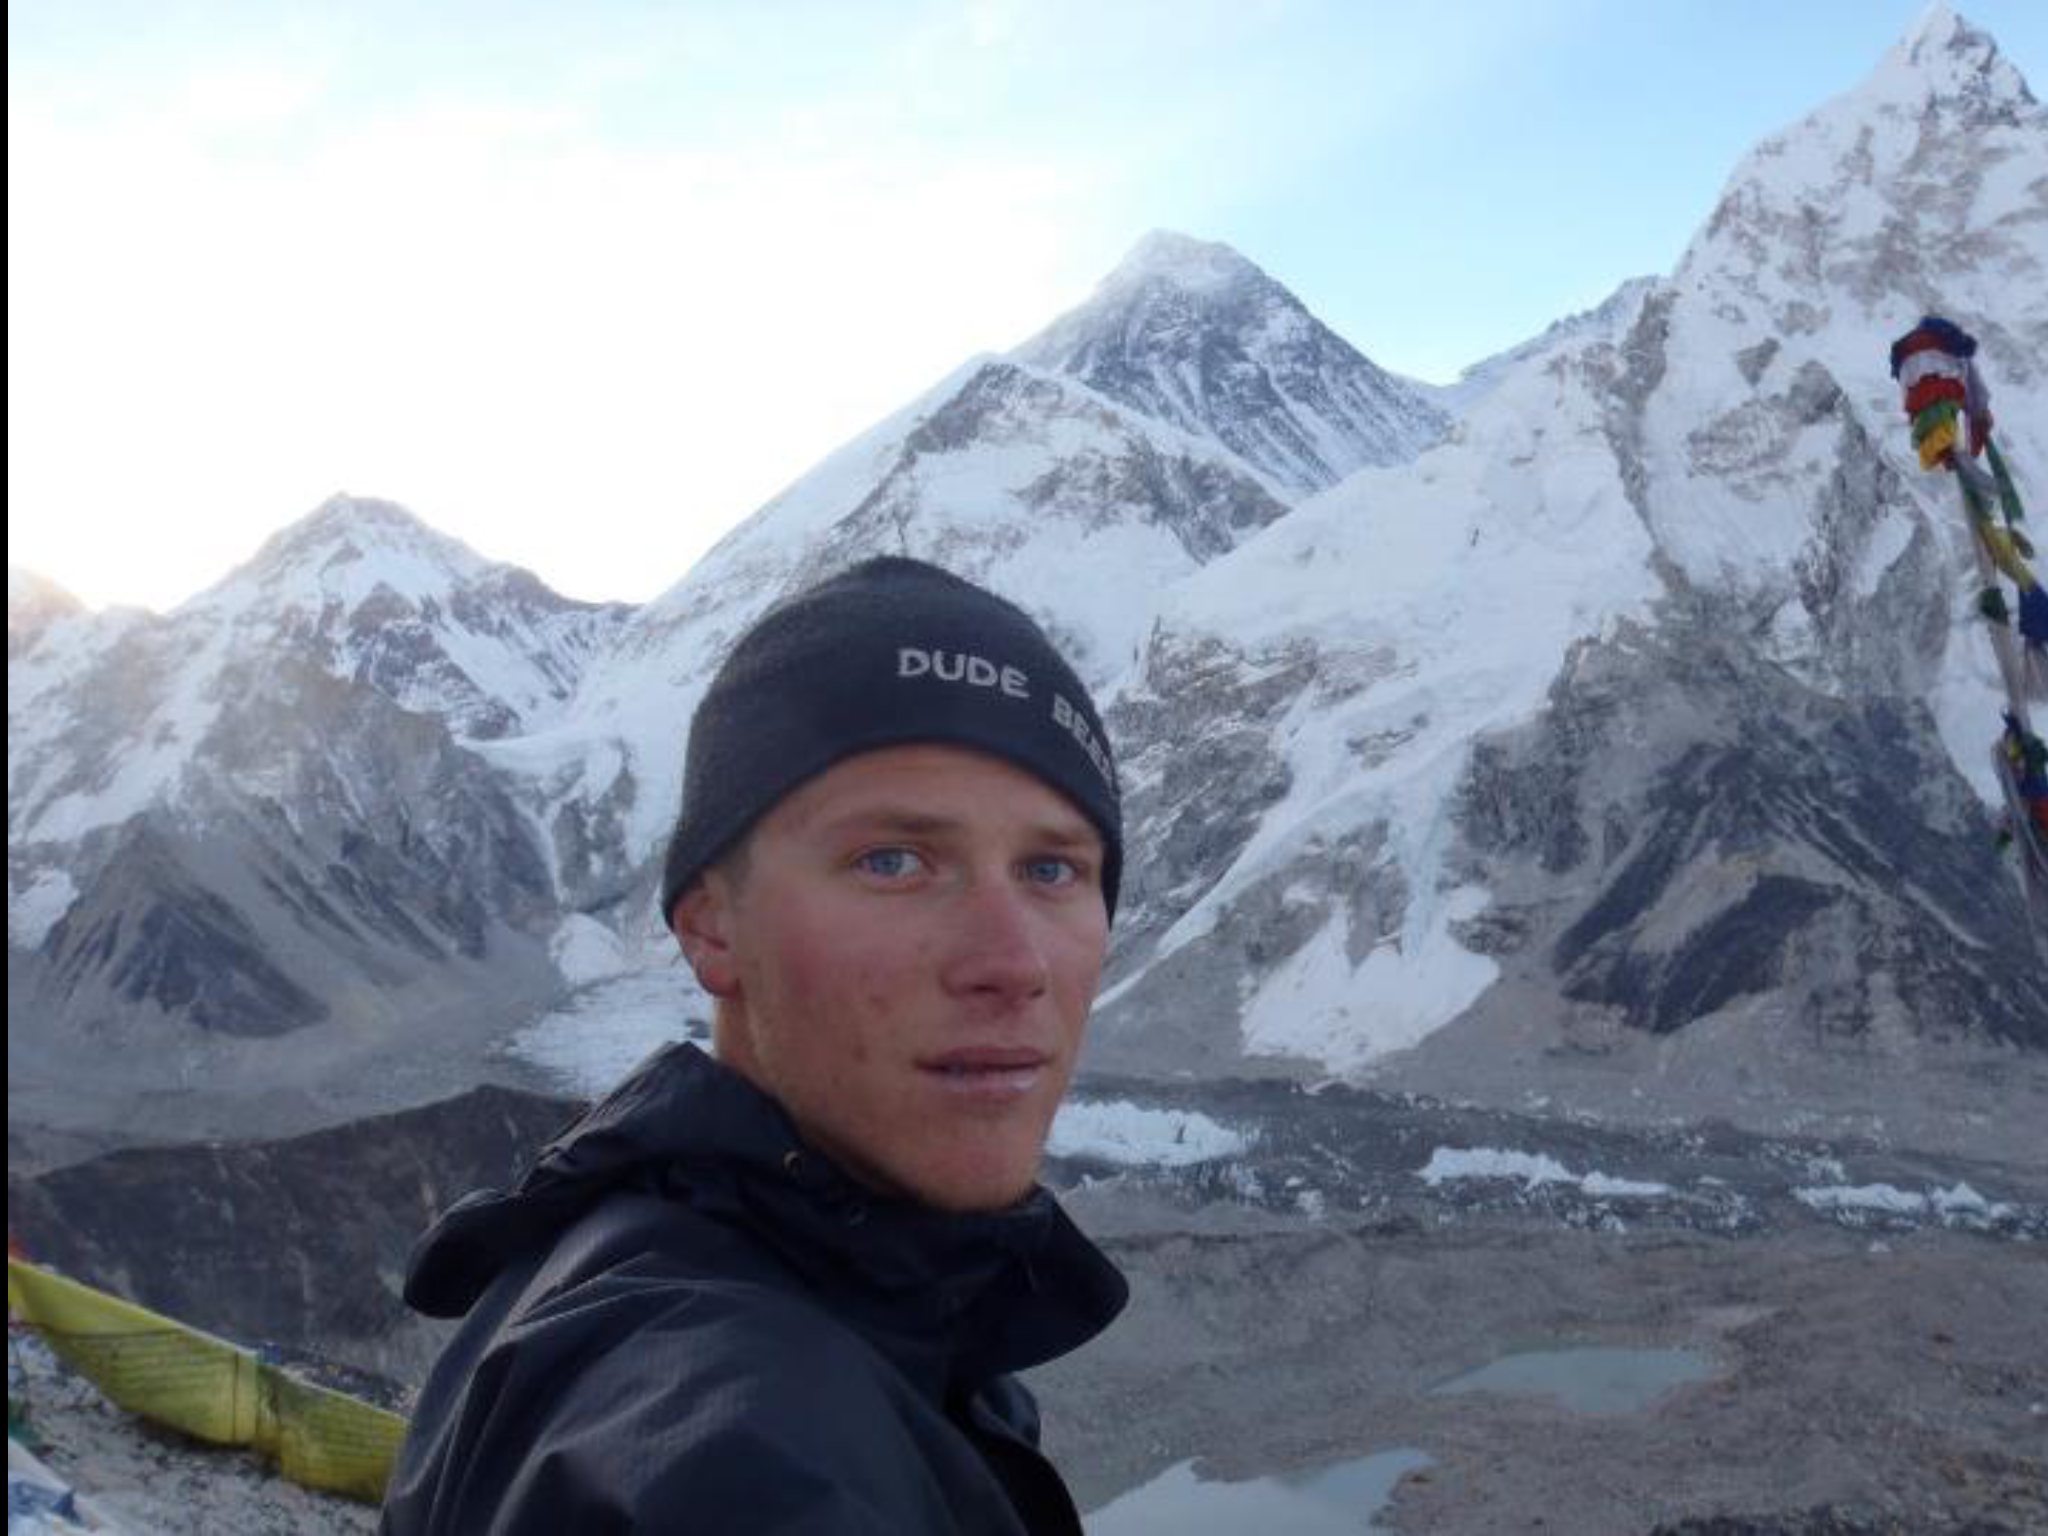 """Selfie with Mount Everest (8848m), before """"selfies"""" were a thing."""